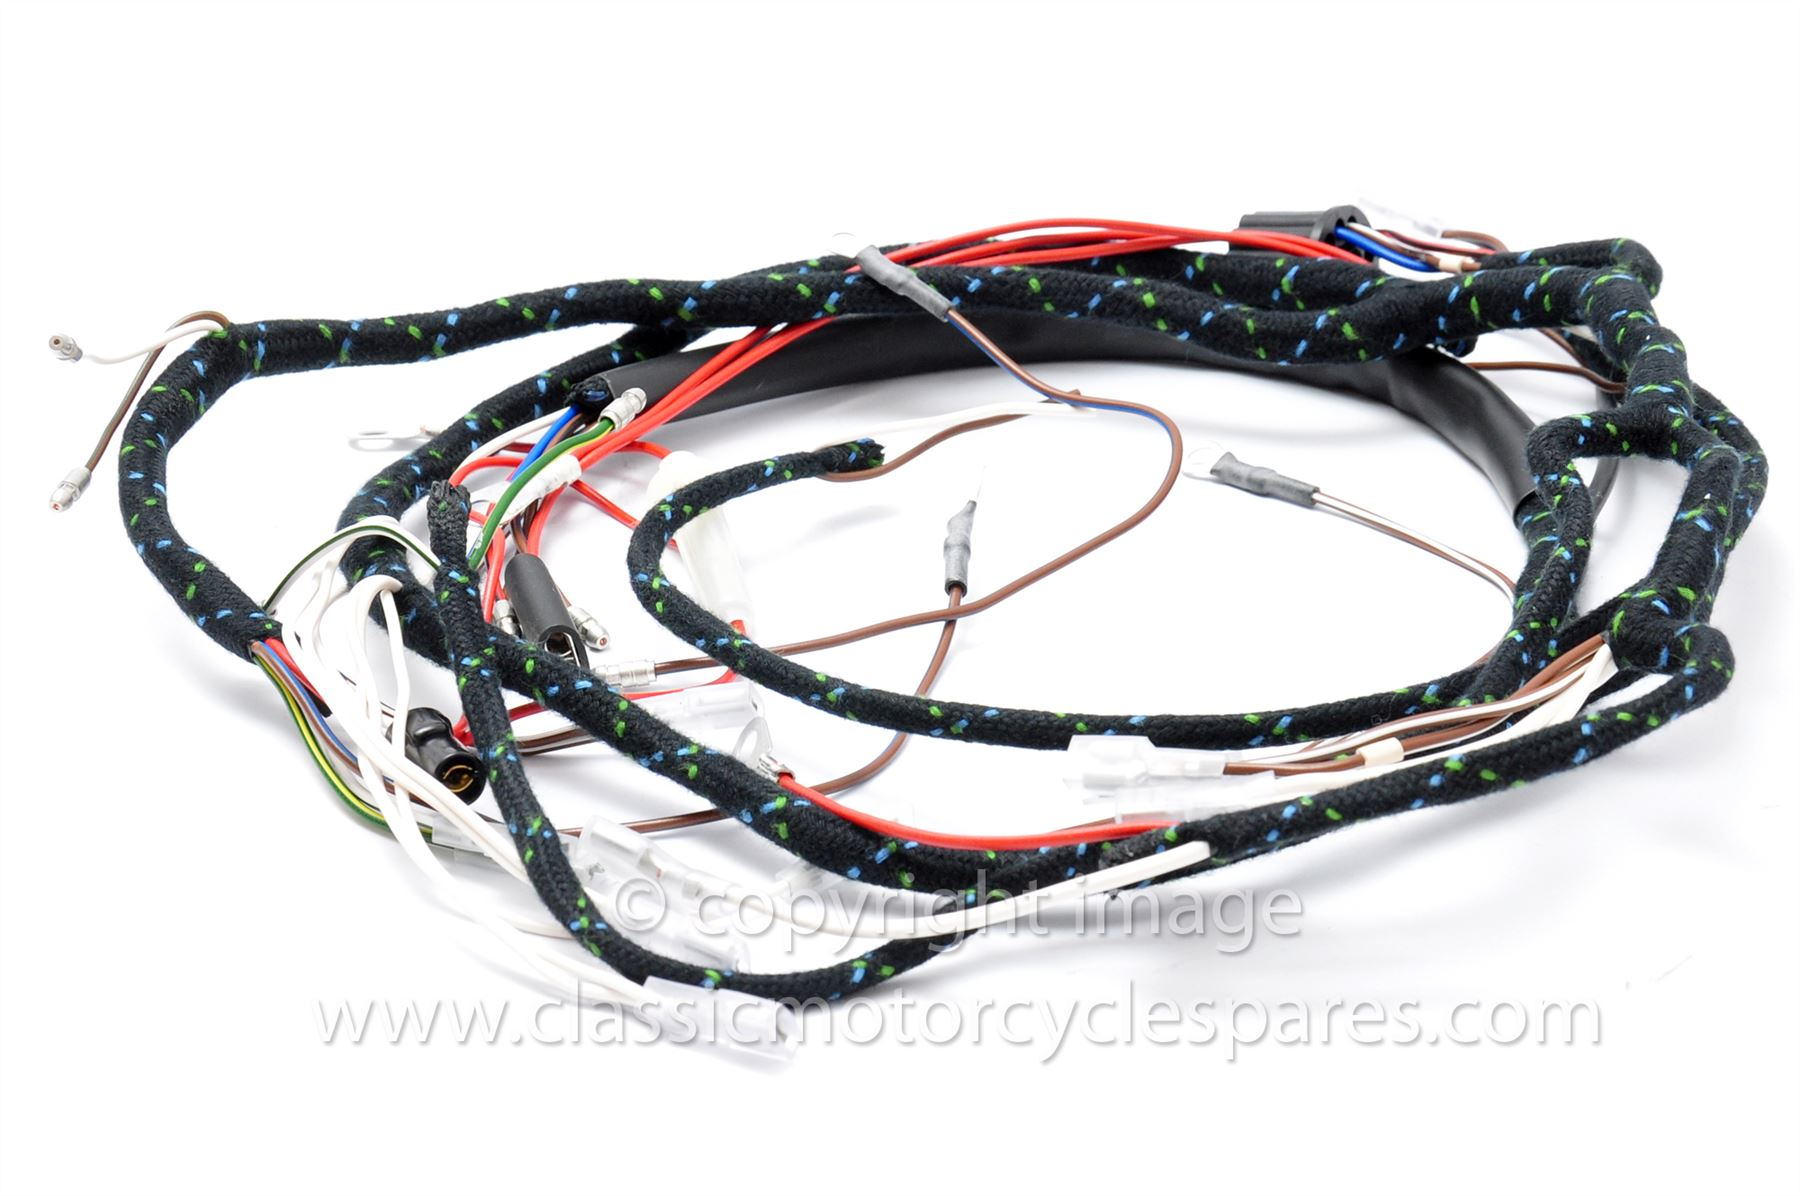 Details about Wiring Harness, Triumph T90 T100 TR6 T120, 1966, 12 volt, on mgb wiring harness, tr3 wiring harness, tr6 engine,